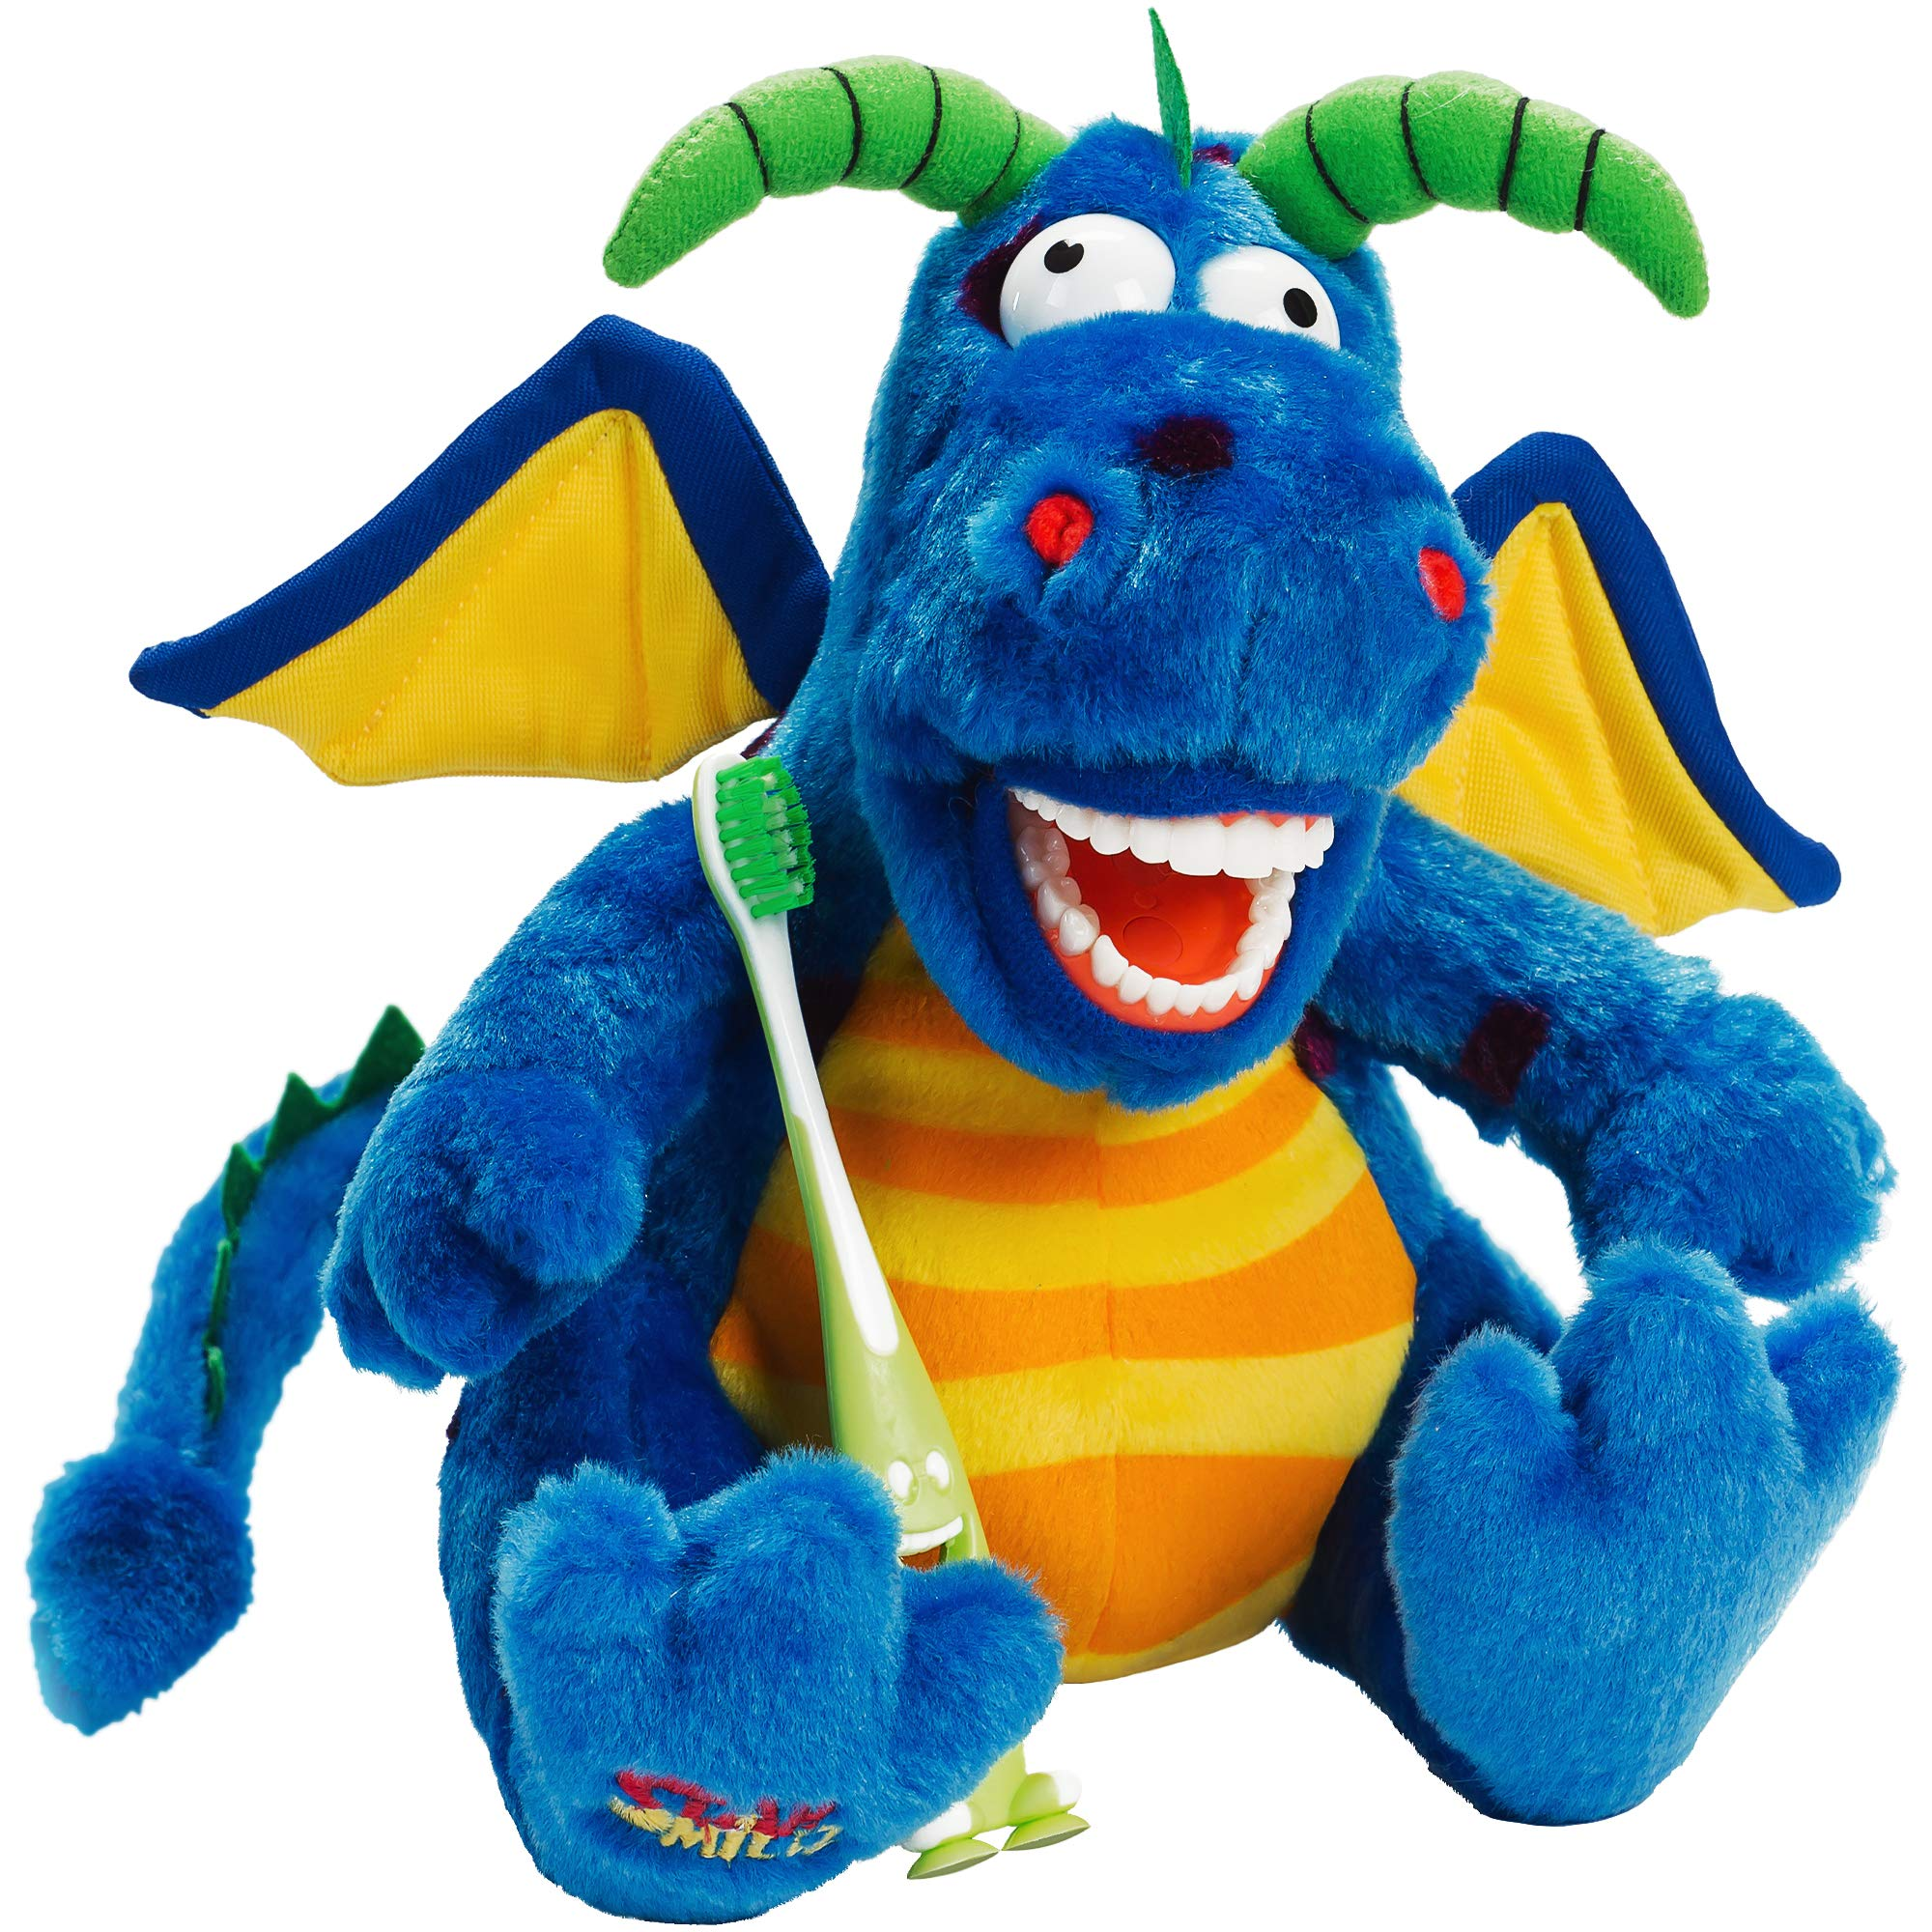 StarSmilez Kids Tooth Brushing Buddy Lil Magi Dragon - Plush Dental Education Helper - Teach Children flossing and Overall Care for Mouth and Teeth